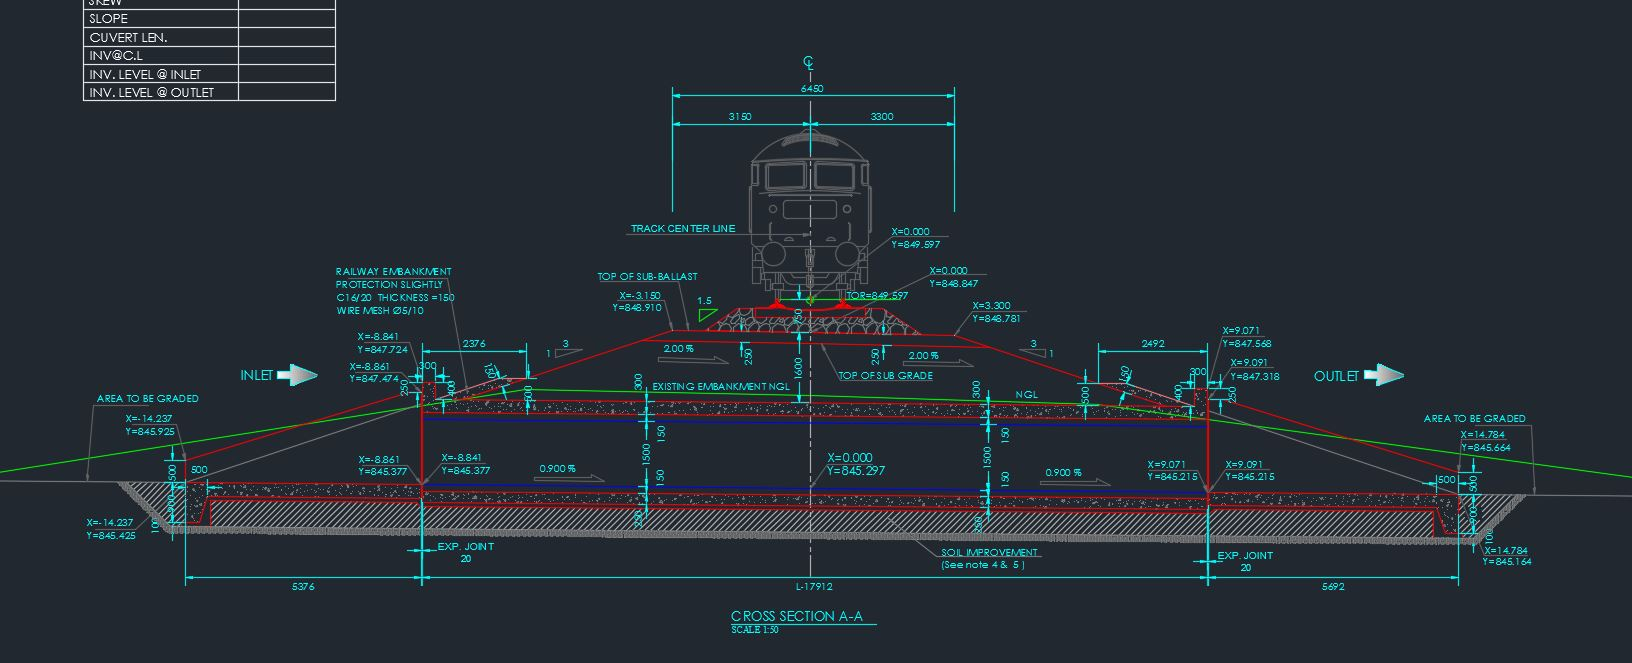 RAILWAY - Pipe Culvert (3x1 5m Dia) - CAD Files, DWG files, Plans and  Details